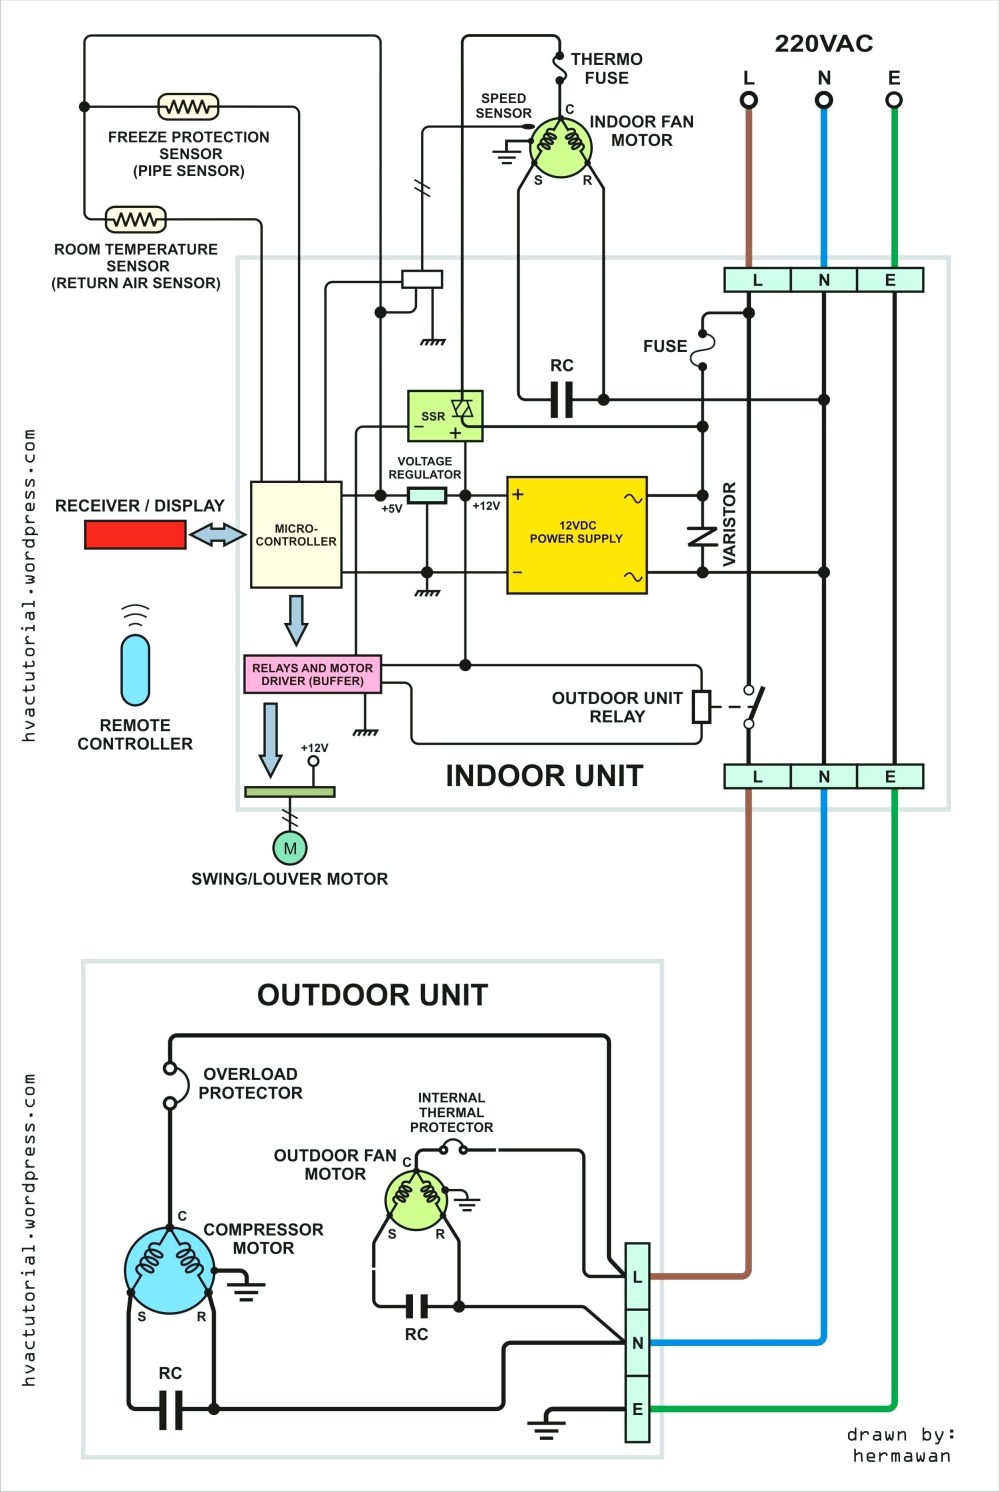 medium resolution of lennox furnace thermostat wiring diagram hecho blog wiring diagram furnace wiring diagram older